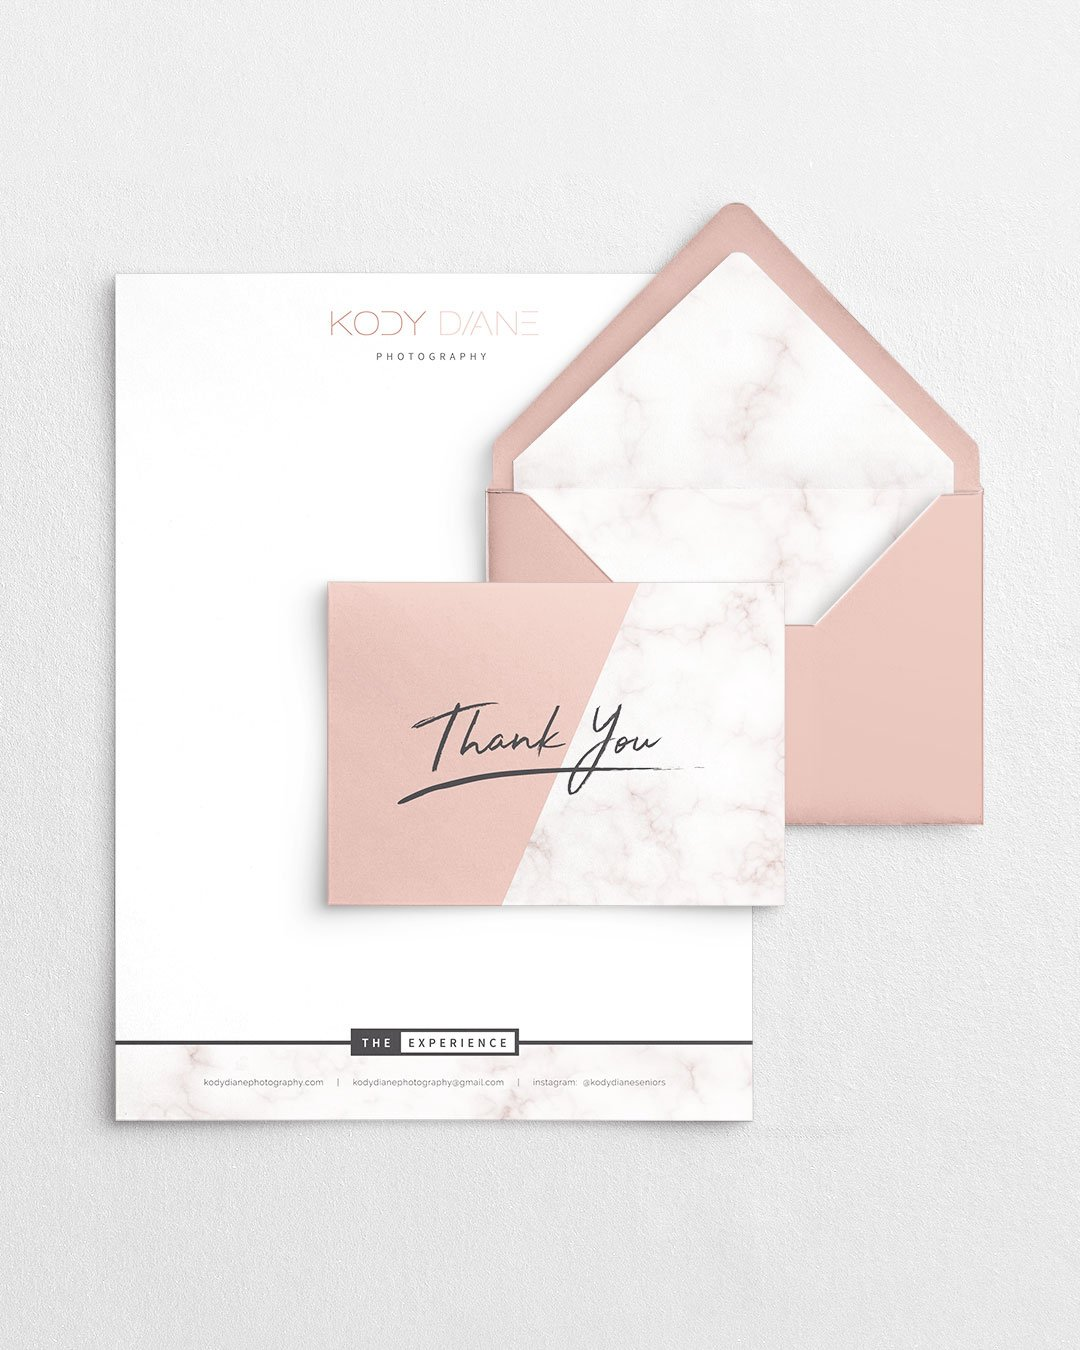 collateral design letterhead thank you card kody diane photography